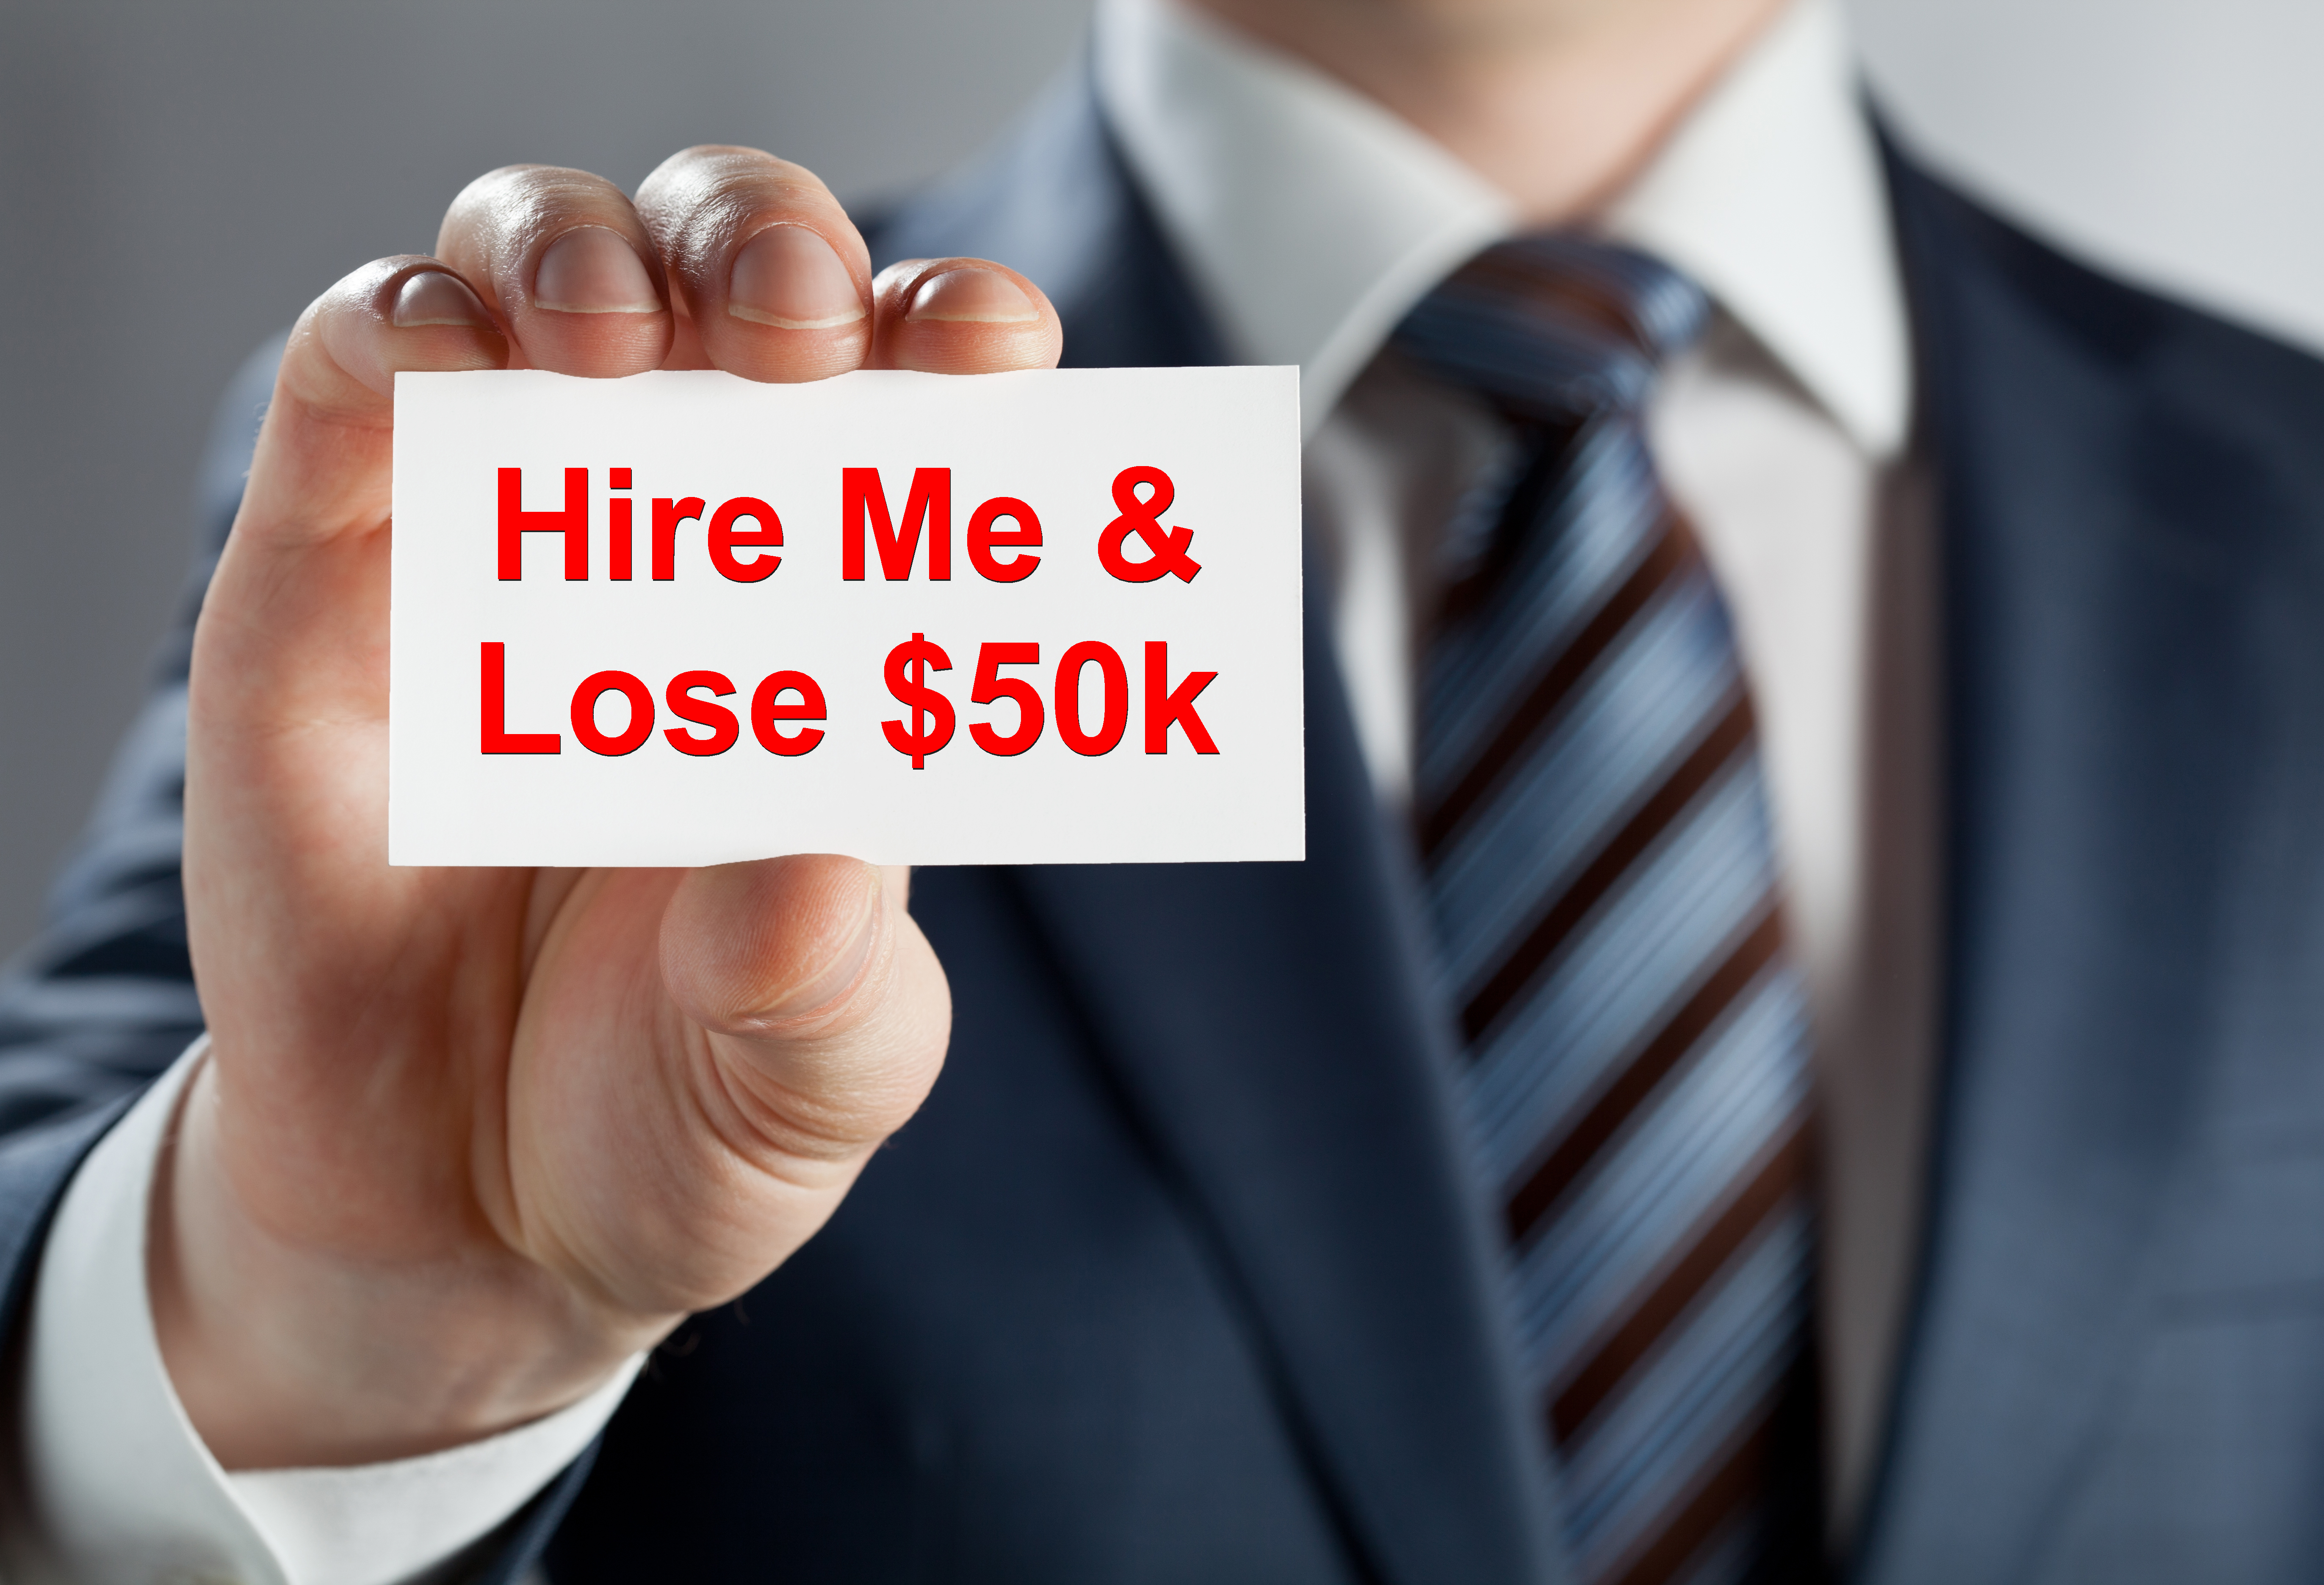 career coach executive coach presentations pitches training text added man holding business card poor performer shutterstock 124567405